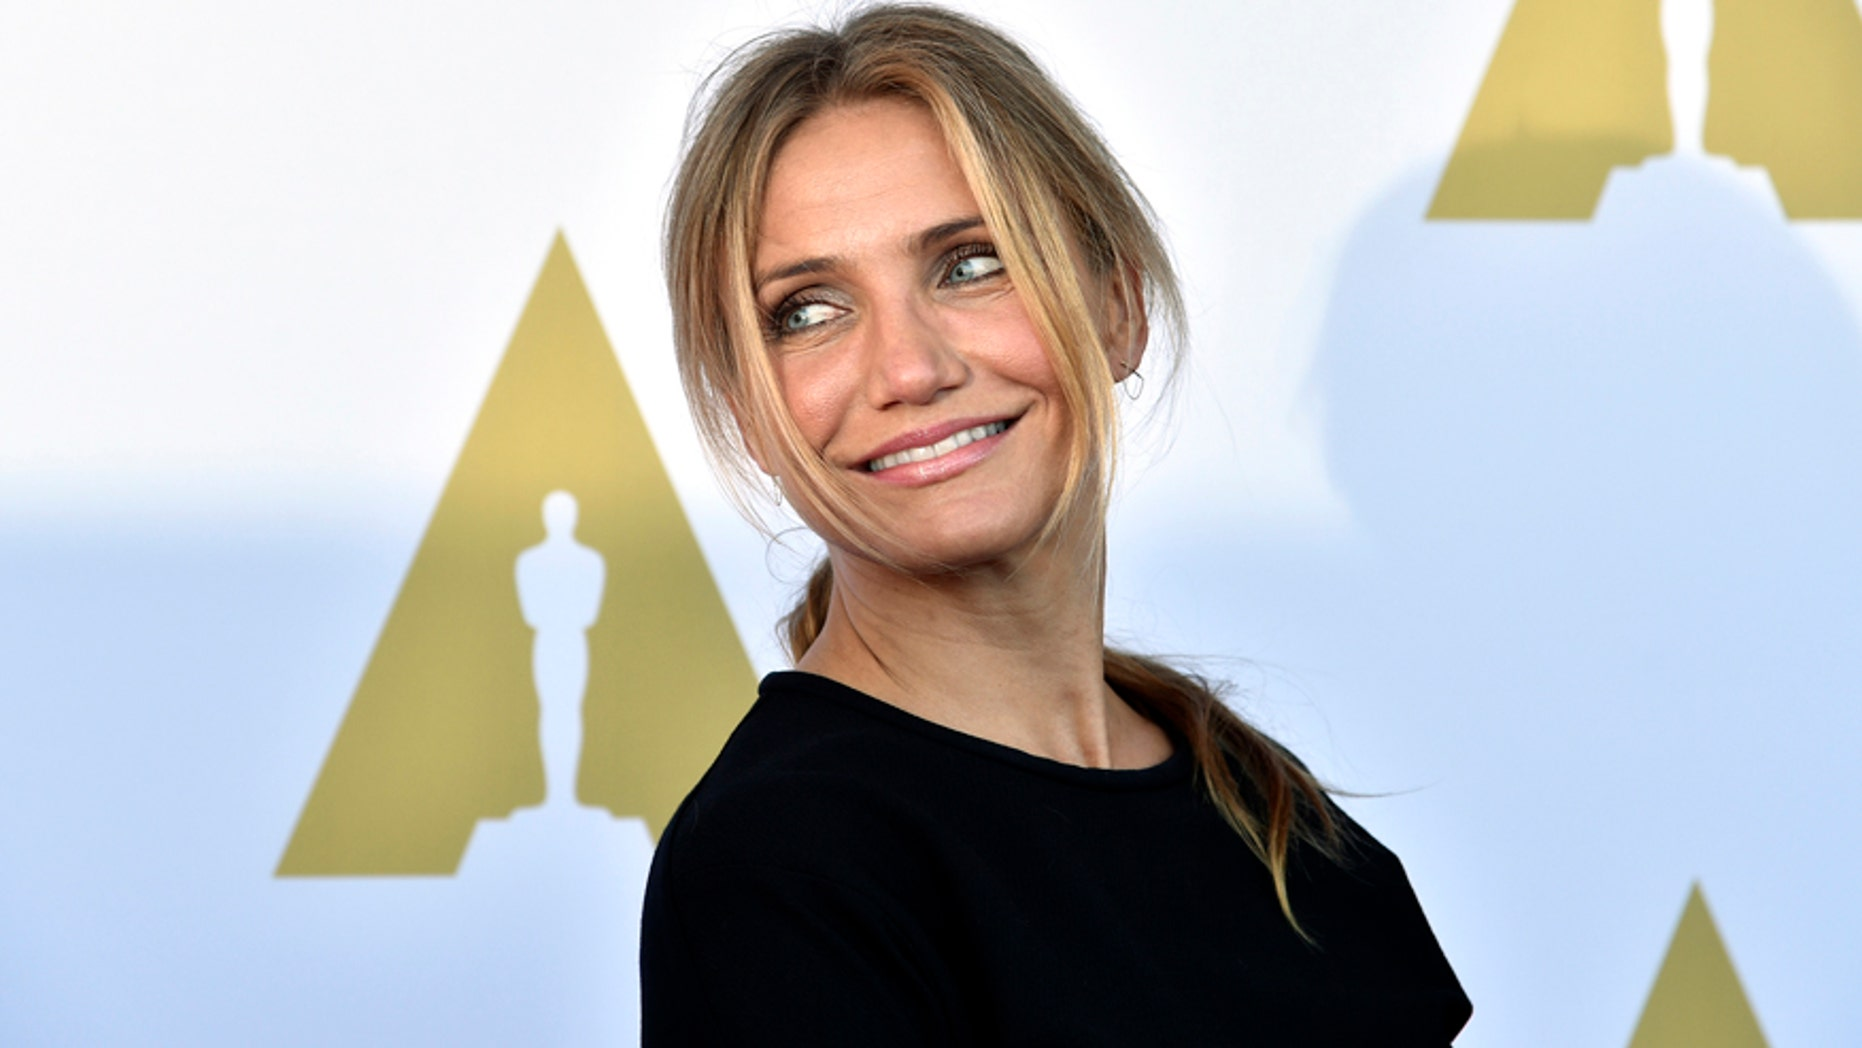 Actress Cameron Diaz attends a private luncheon in celebration of Hollywood Costume at the future home of the Academy Museum of Motion Pictures in Los Angeles, California October 8, 2014.